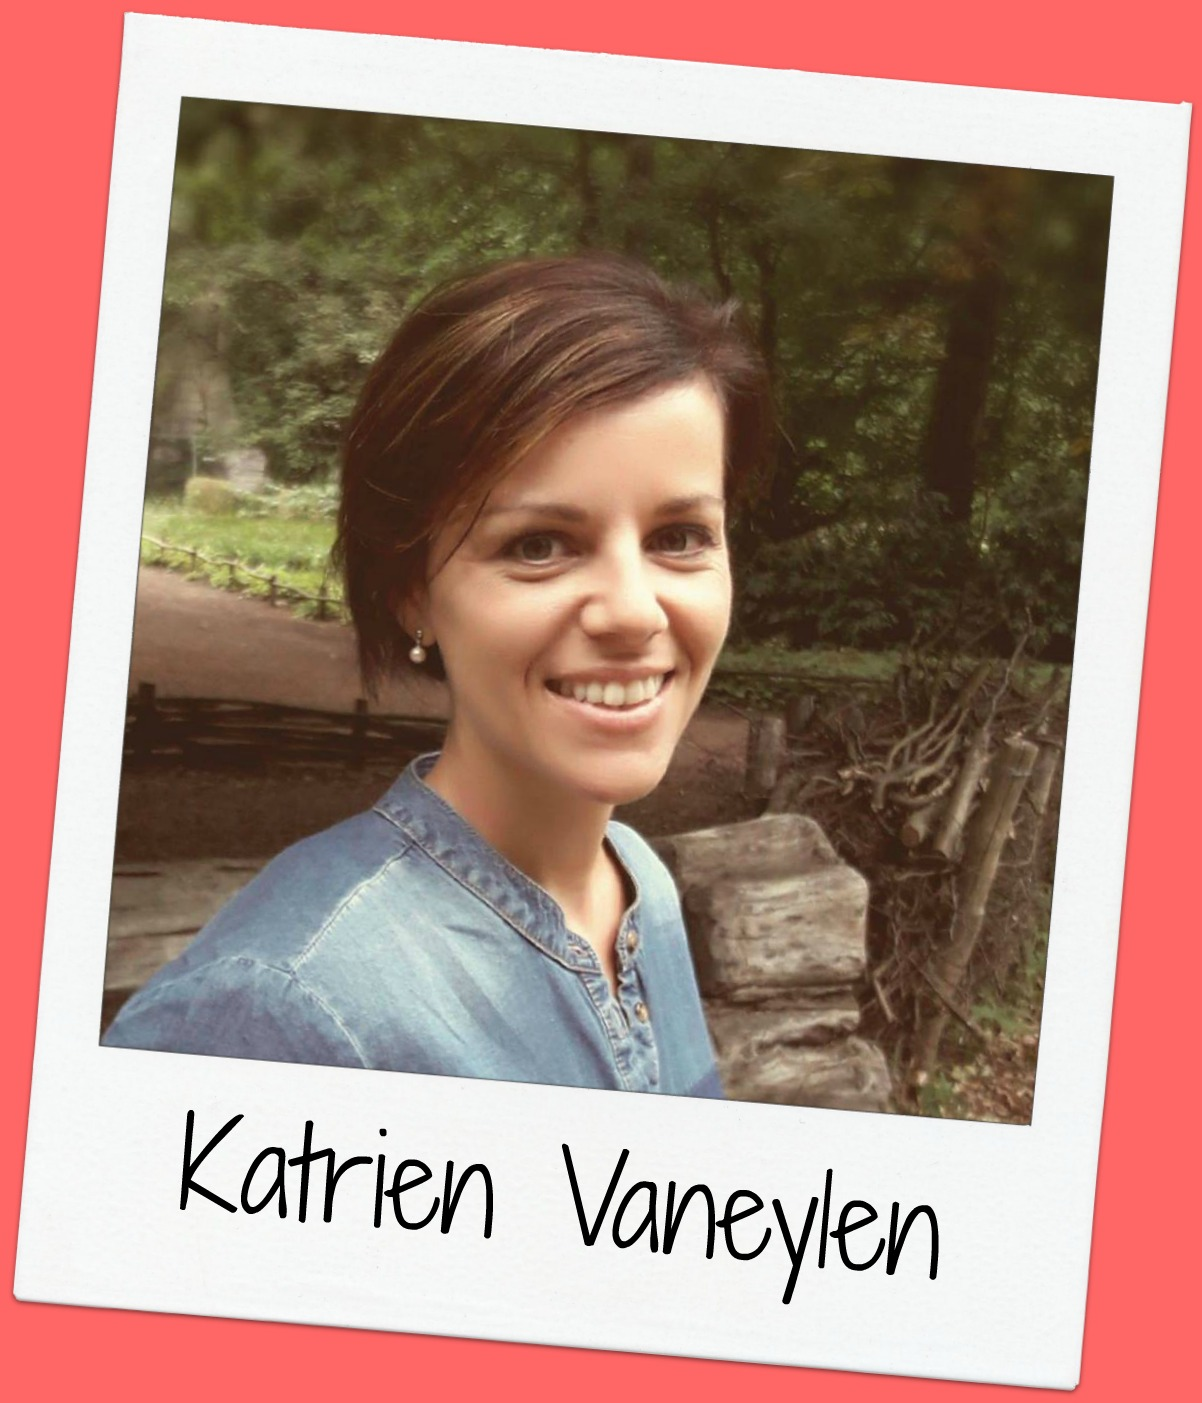 Katrien has a Master  in TEW (Applied Economics Science) and has been working at SBD as an HR Manager for 4 years. She has 2 young children.